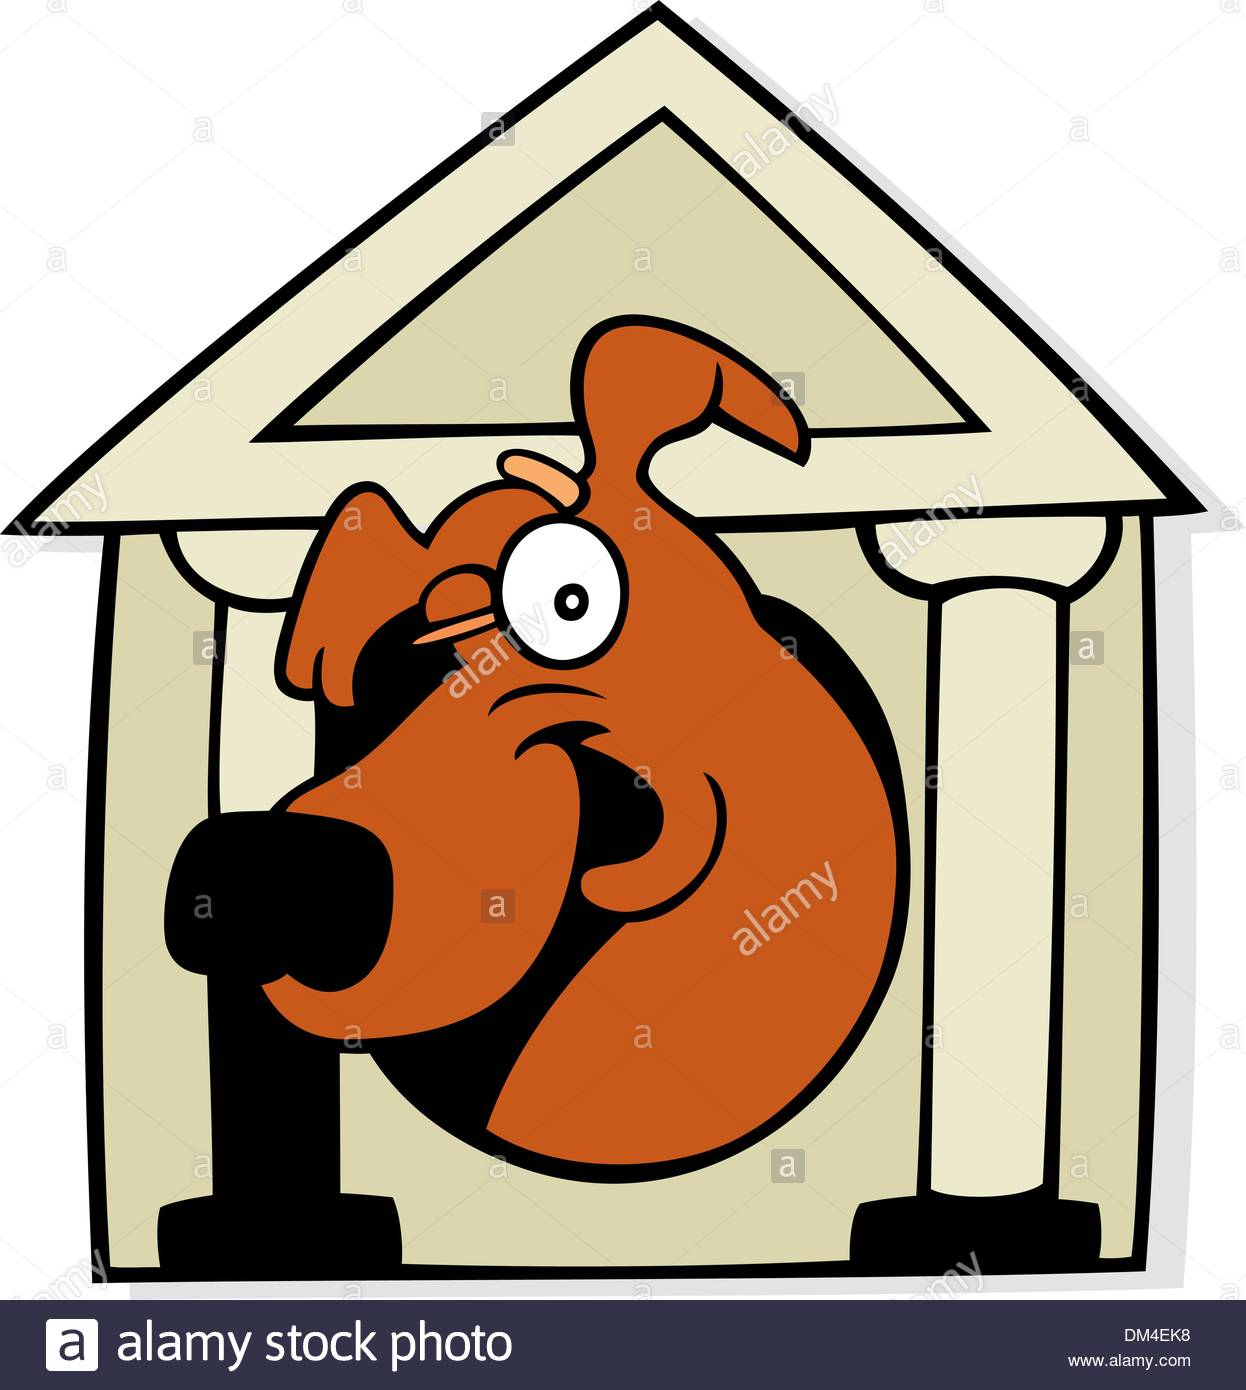 1246x1390 Dog In Classic Doghouse Stock Vector Art Amp Illustration, Vector